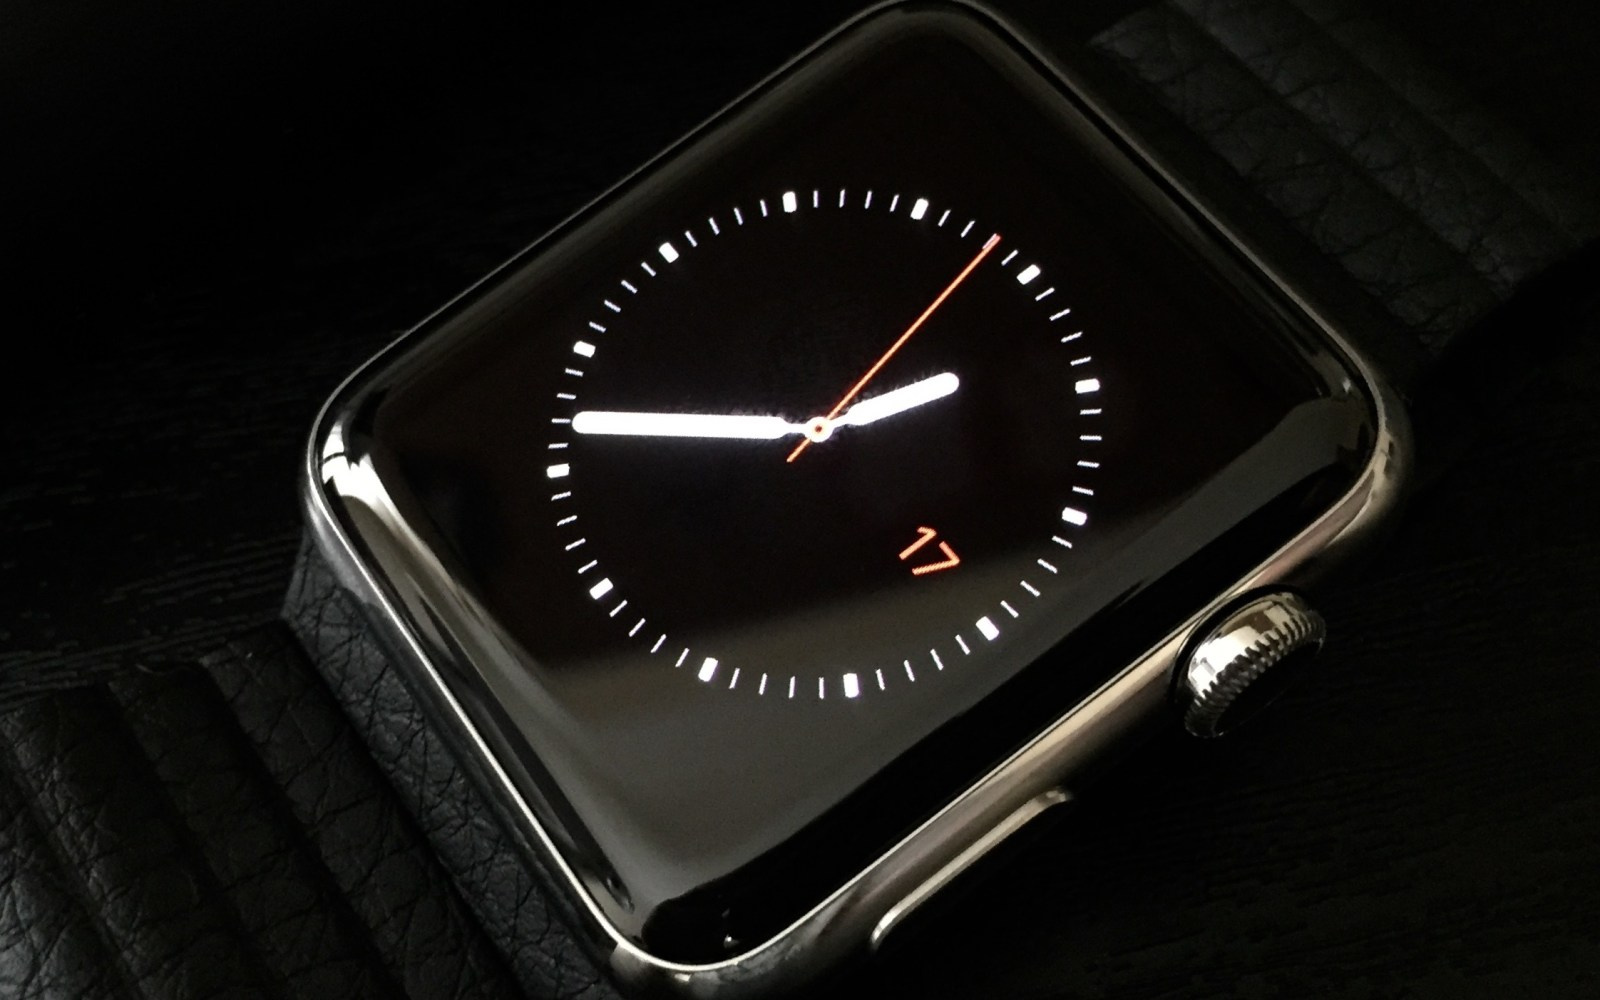 Review: Apple Watch as a watch, a gadget, and platform (Video)